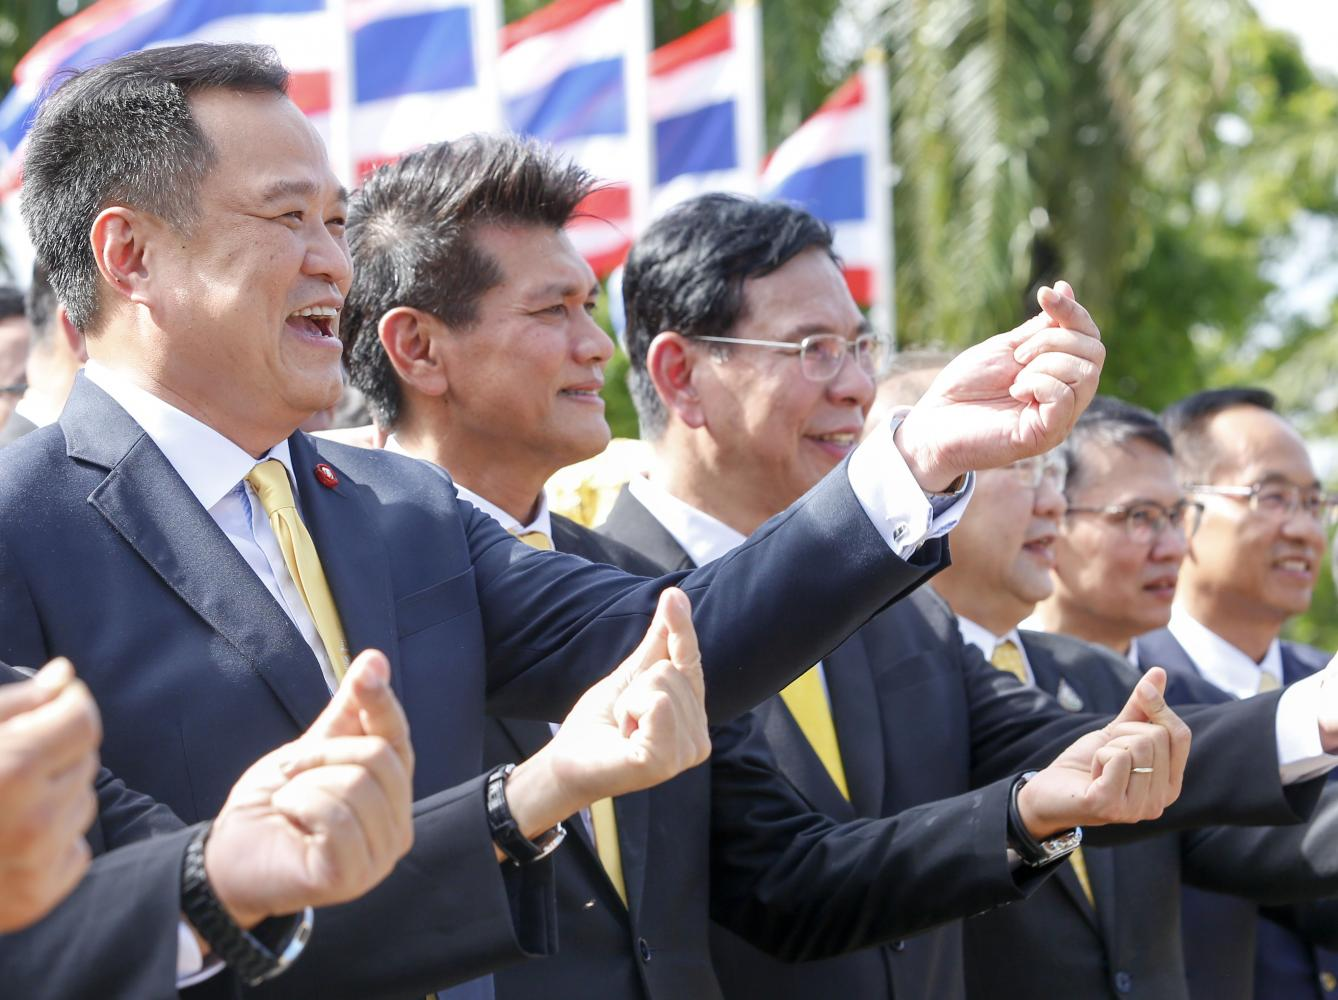 Public Health Minister Anutin Charnvirakul, left, and his deputy, Satit Pitutacha, second left, make a small heart gesture as they report on their first day of work on Thursday. (Photo by Pattarapong Chatpattarasill)